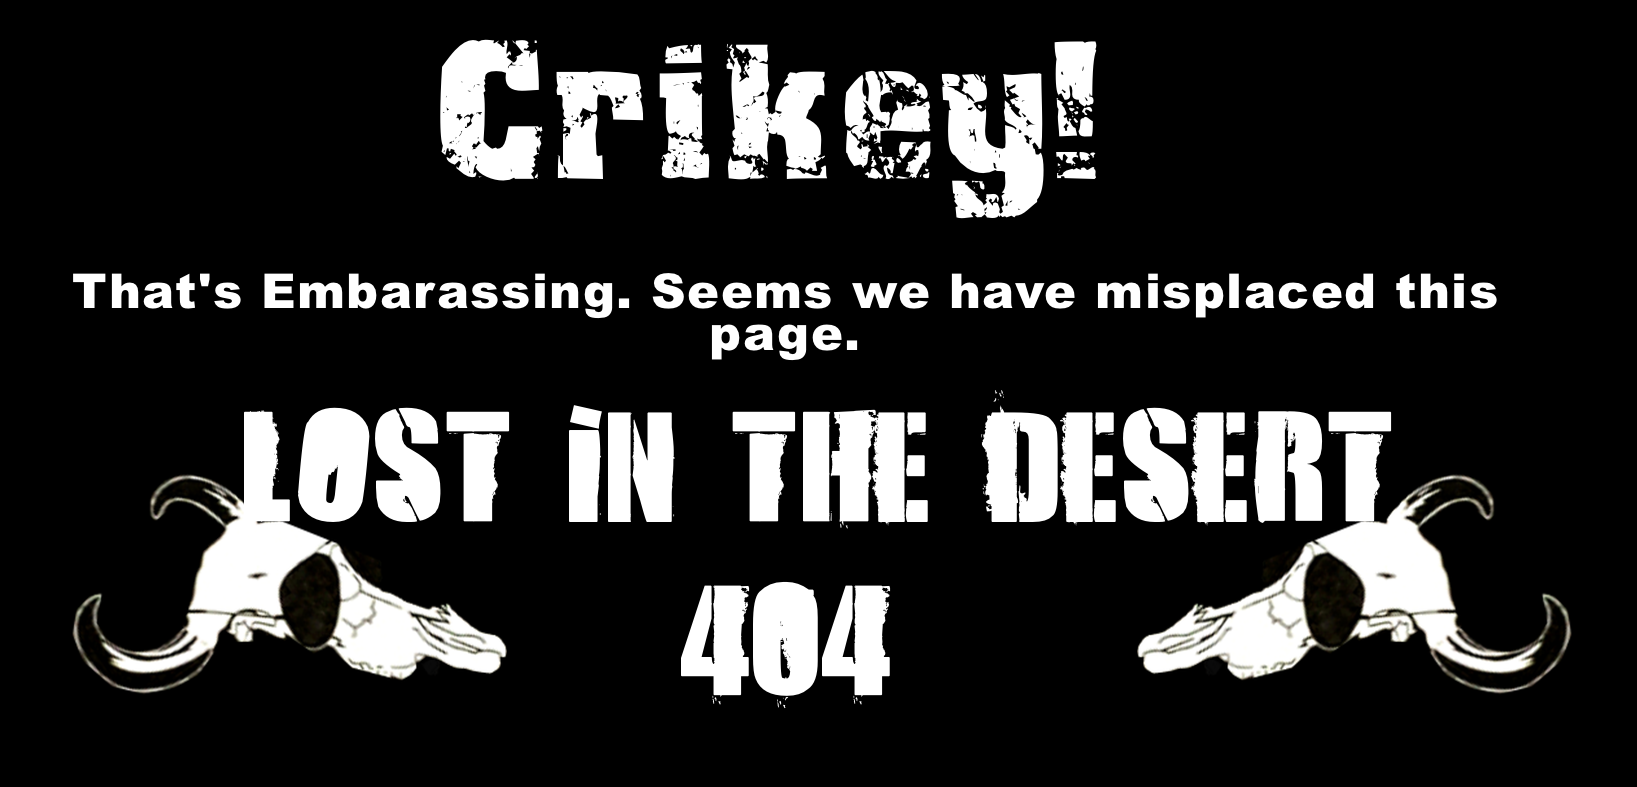 404img.png